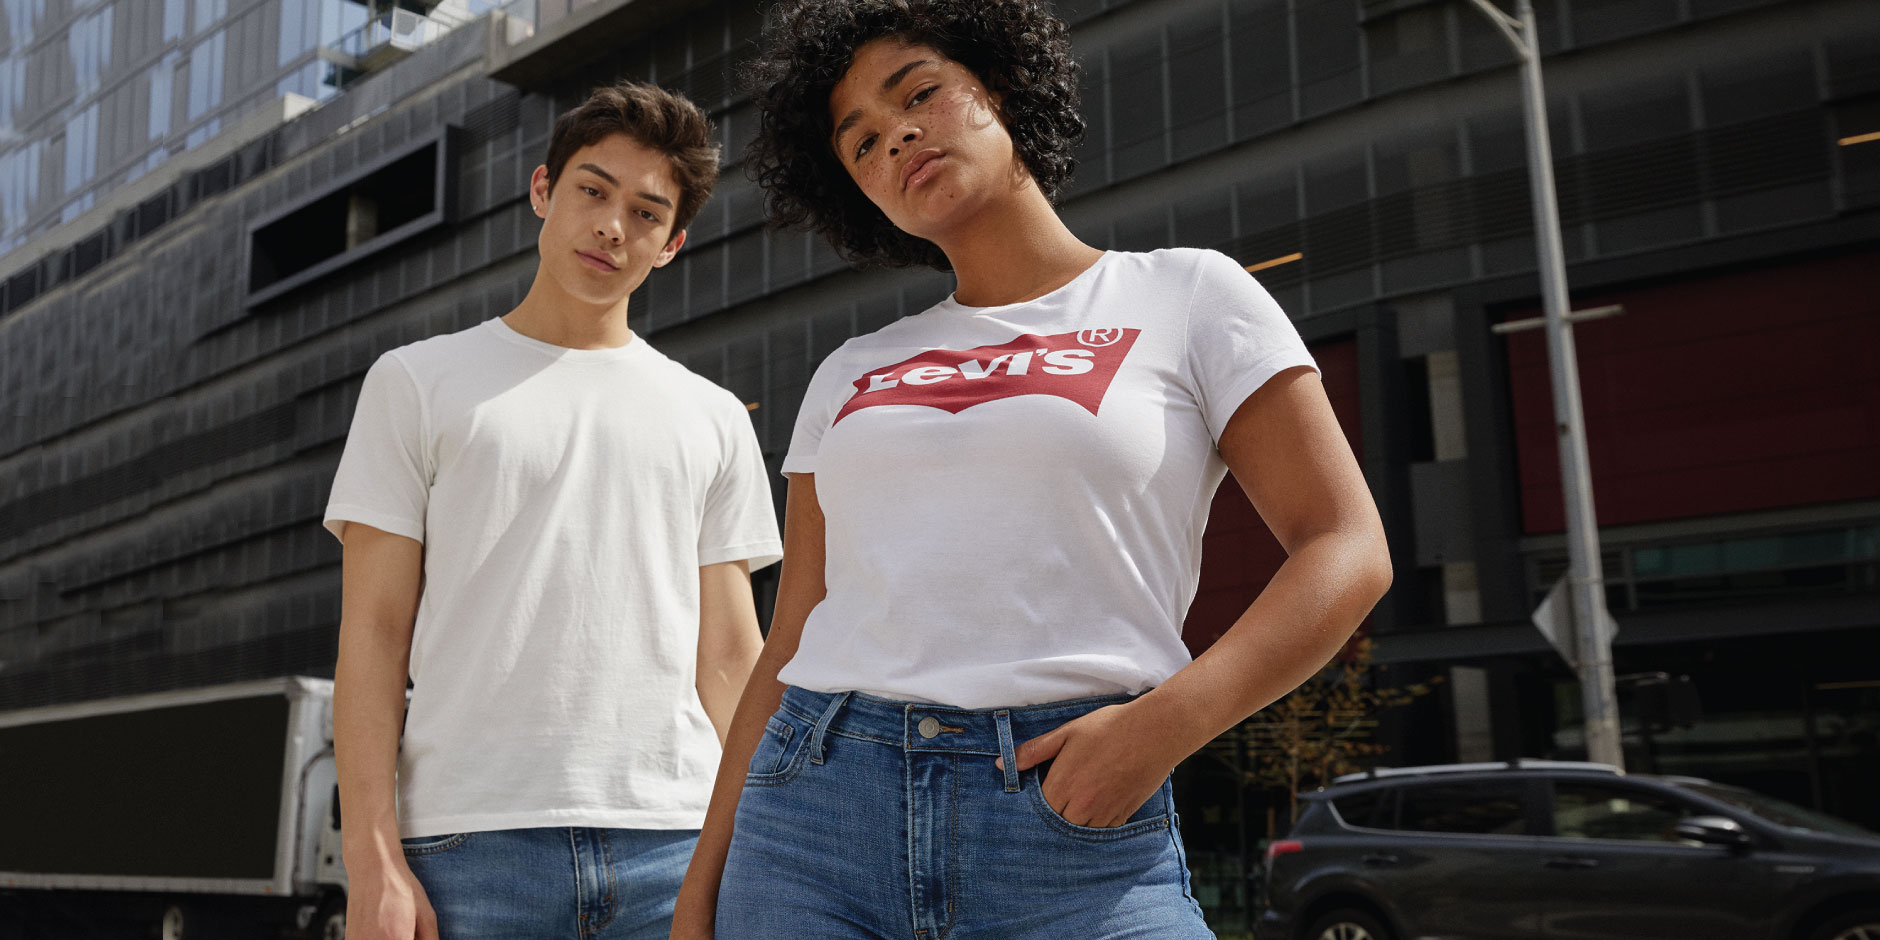 Two models pose in blue jeans and white tees. One tee features a red Levi's logo.